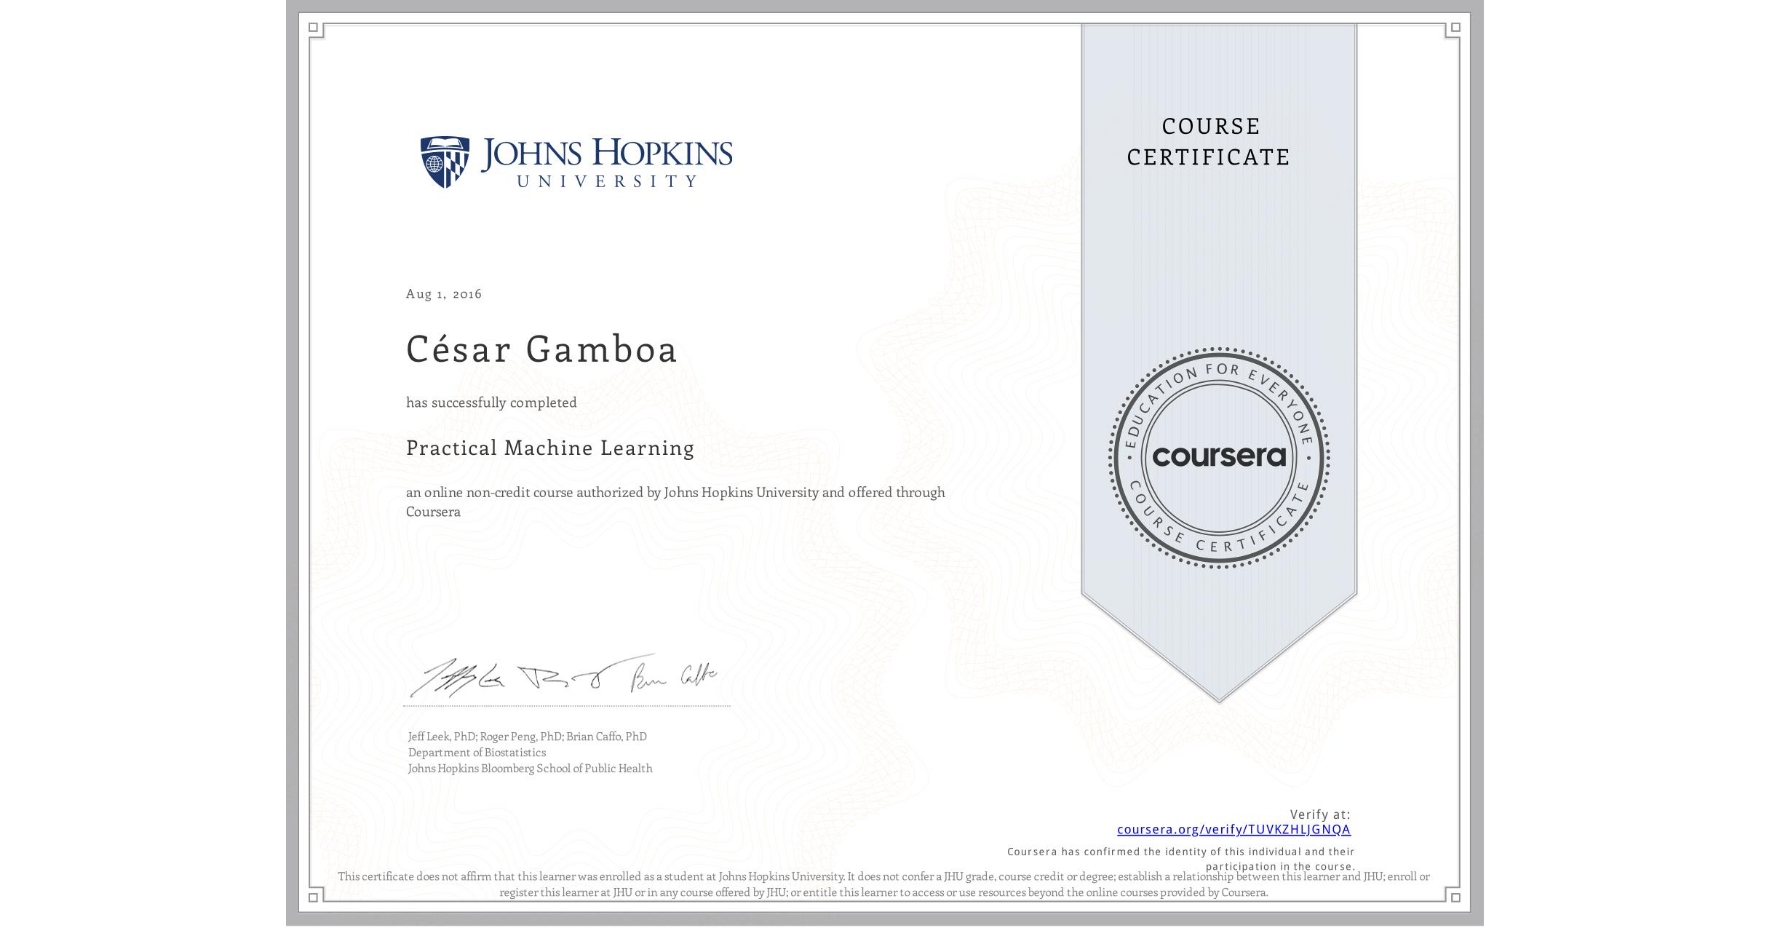 View certificate for César Gamboa, Practical Machine Learning, an online non-credit course authorized by Johns Hopkins University and offered through Coursera